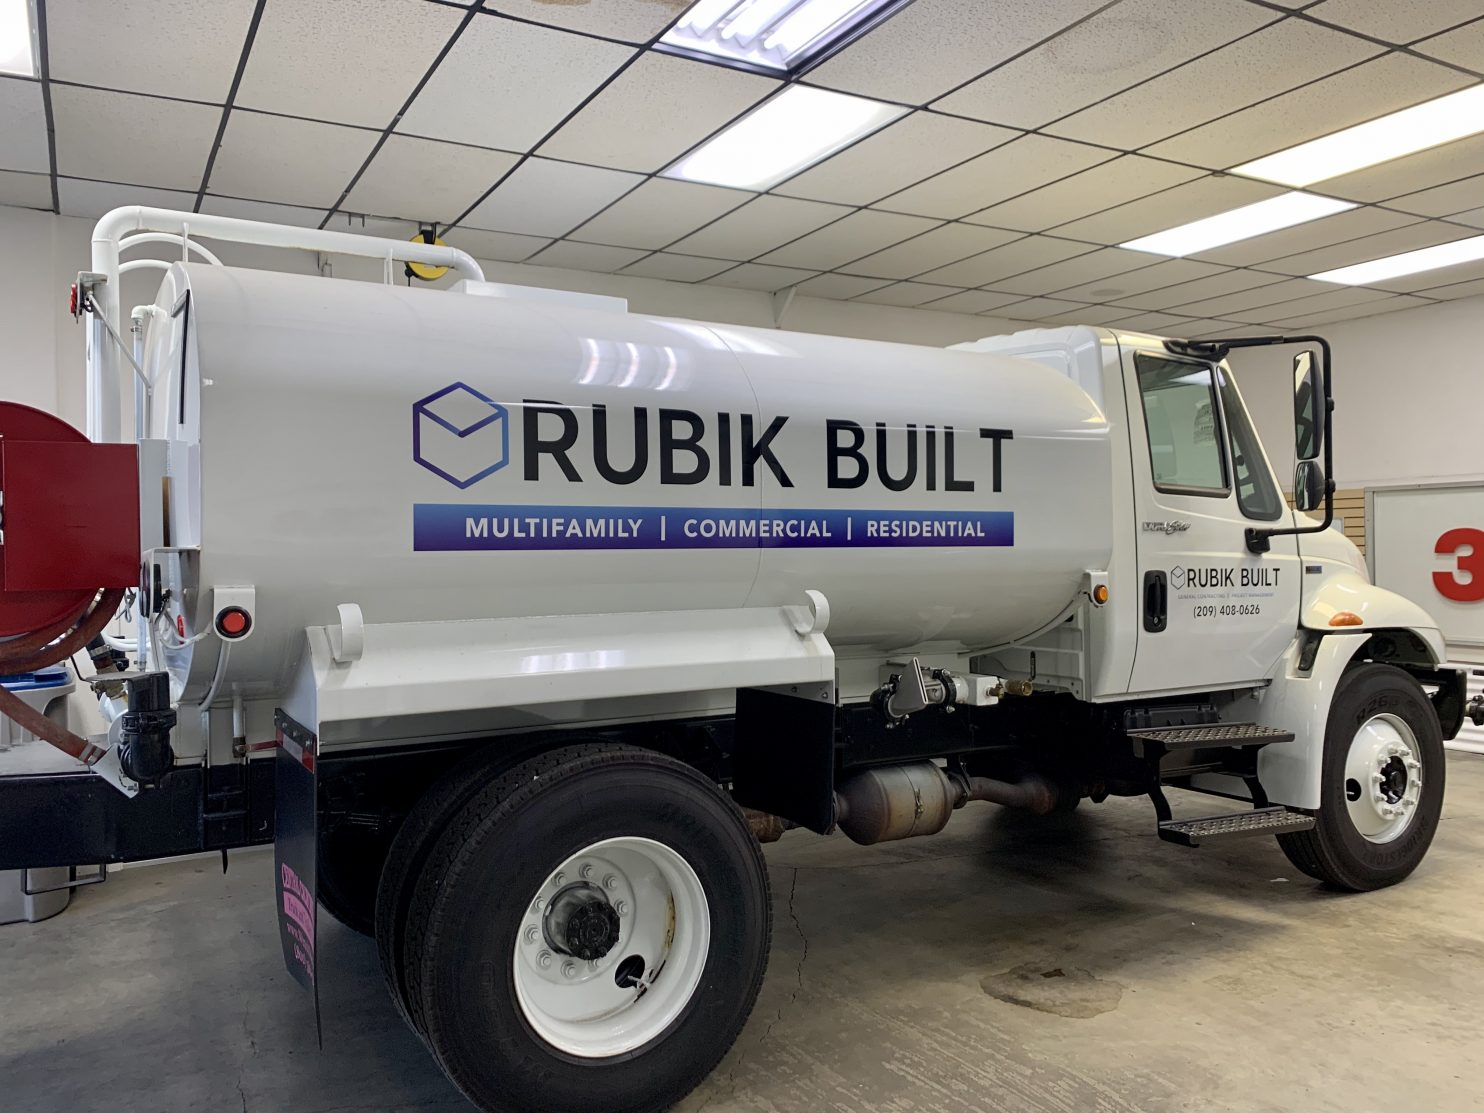 Fresno Tint Helps Rubik Built With Vehicle Signage - Vehicle Graphics and Signage in the Fresno, California Area